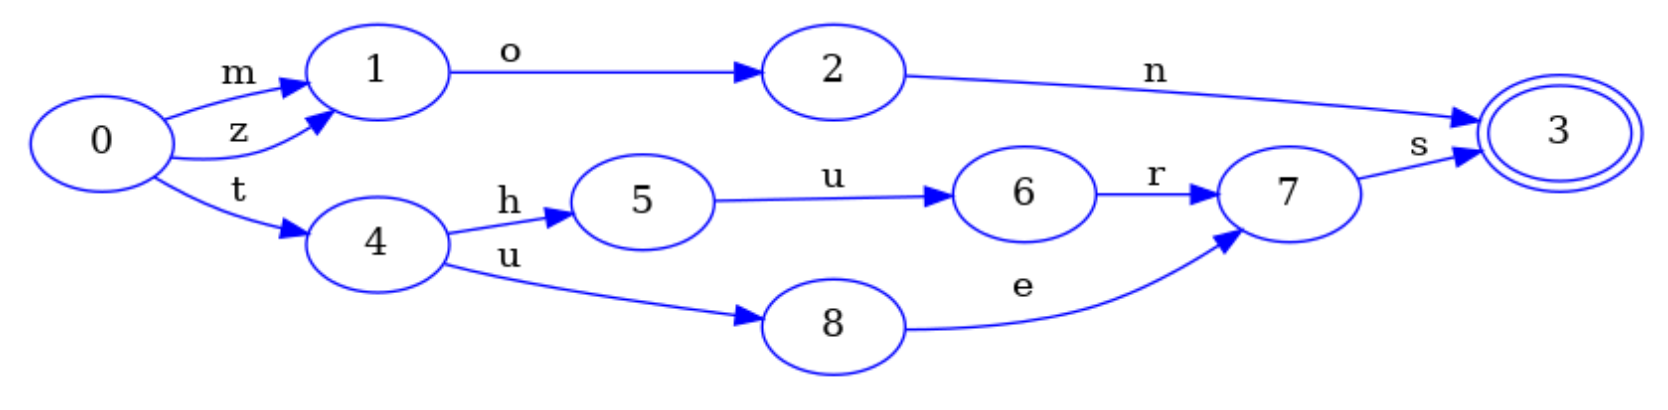 A DFA that accepts the same words as the prefix trie, but using fewer nodes